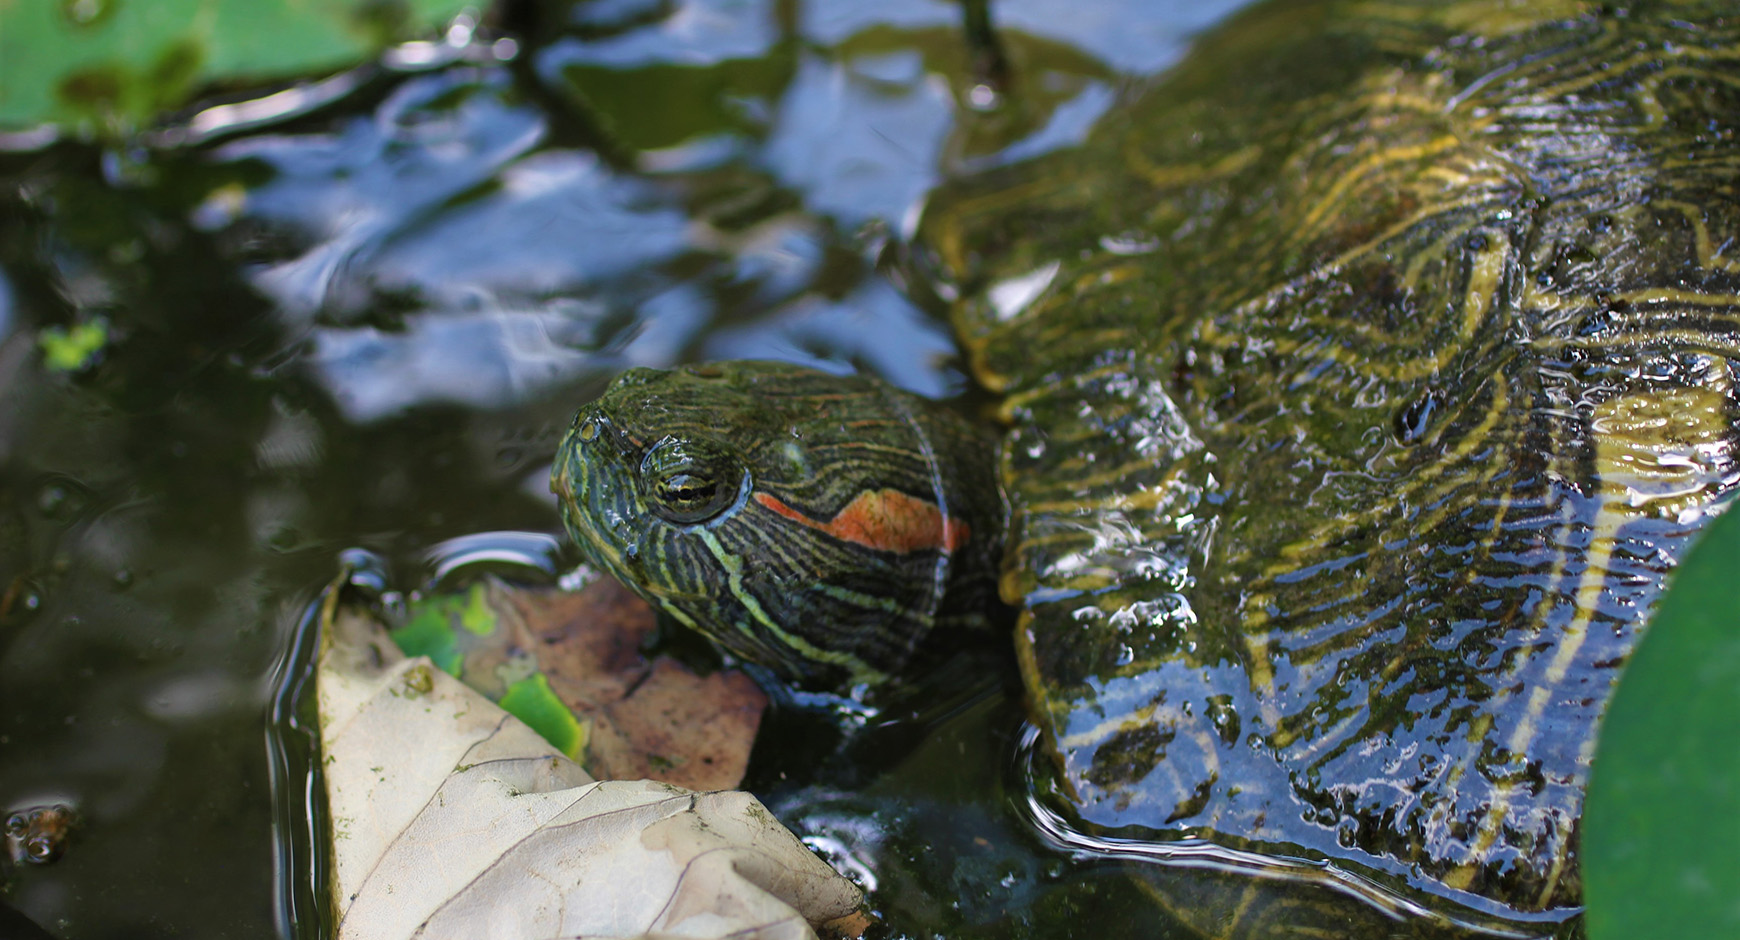 Turtle in Waller Creek